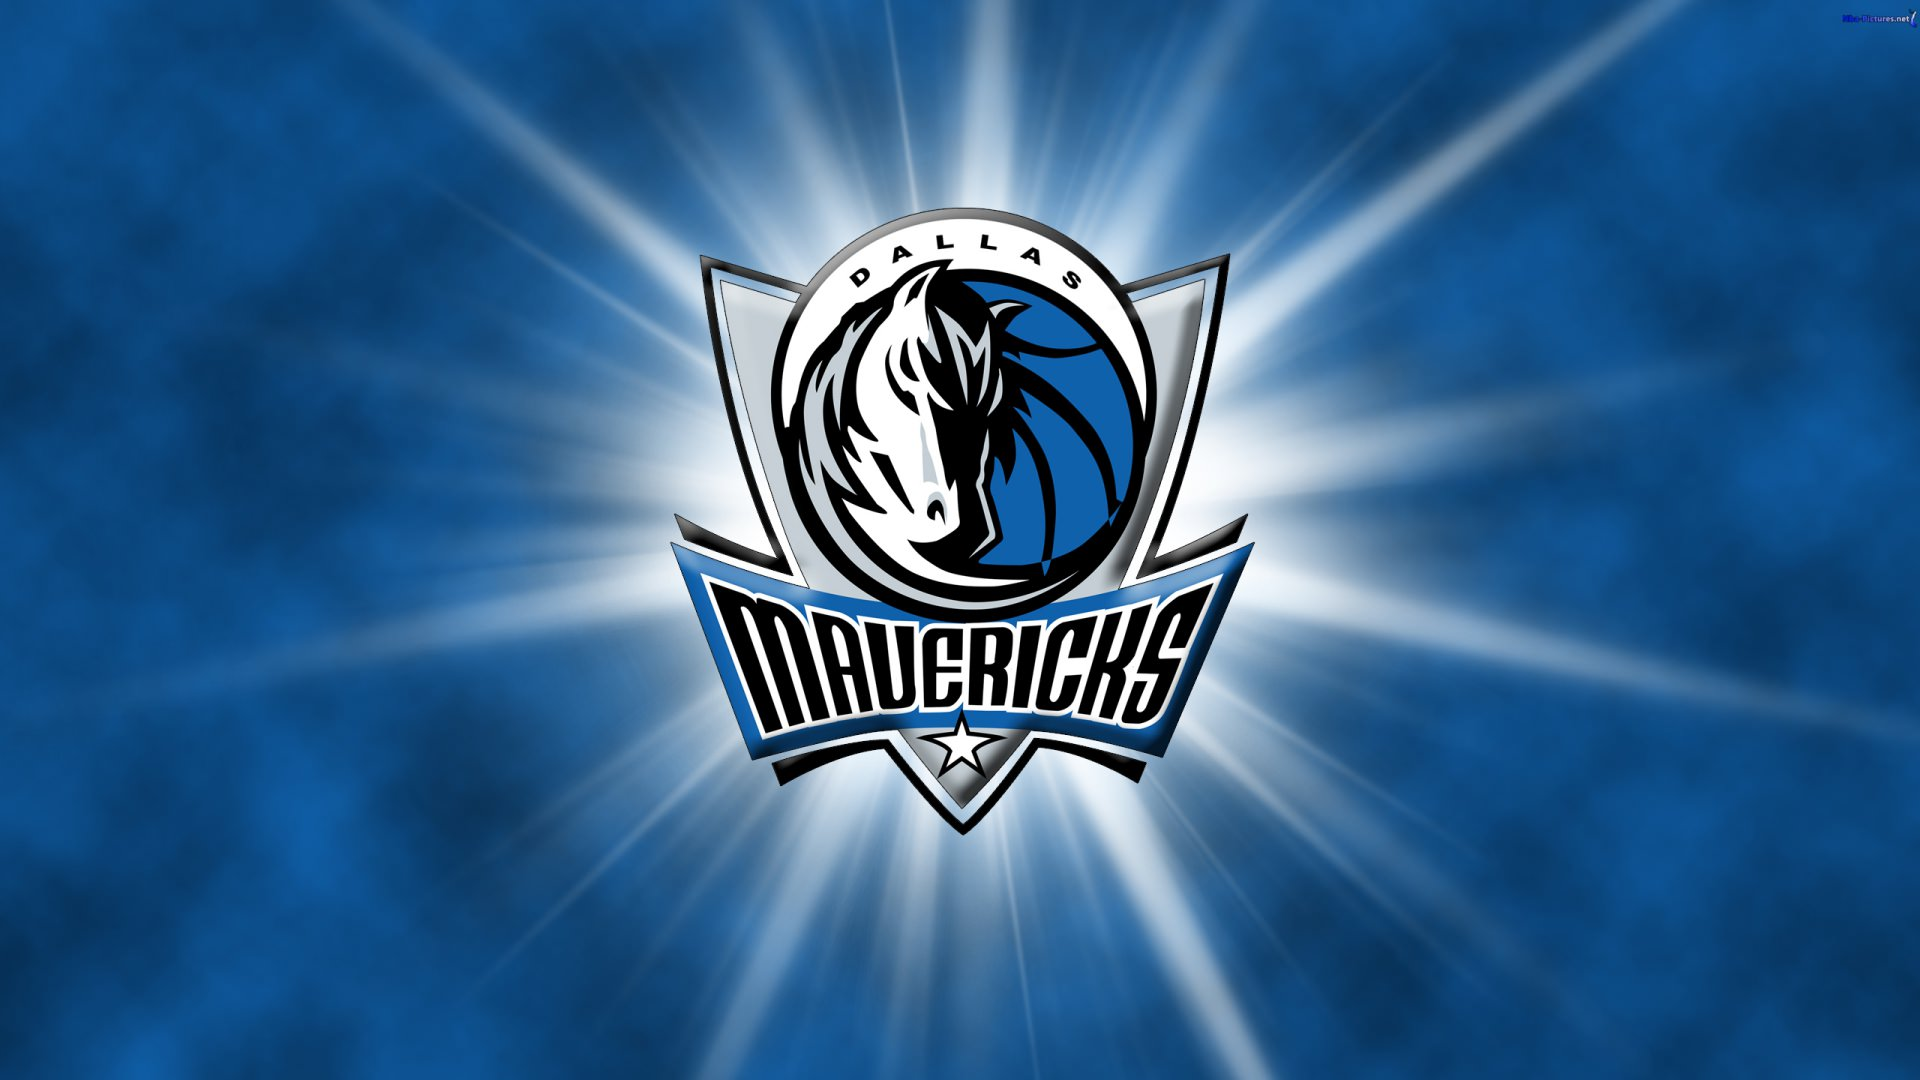 Basketball Team Logo Baackground